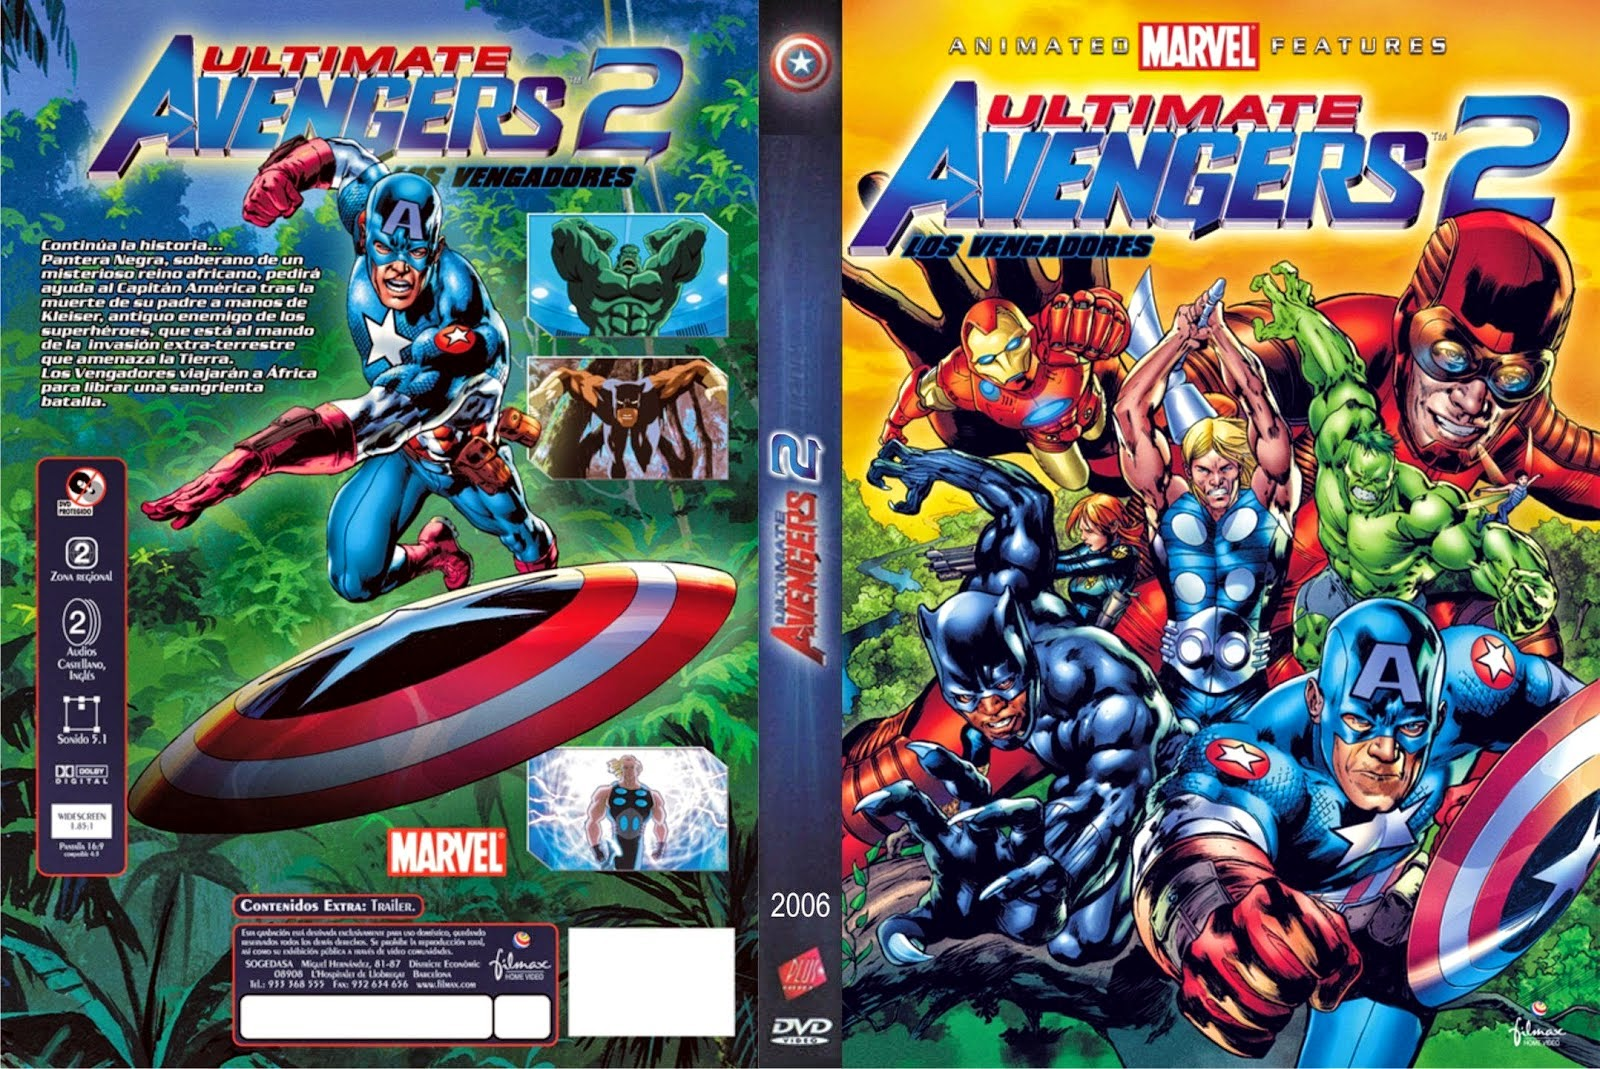 Vengadores 2 (Ultimate Avengers 2 Rise of the Panther) DVD